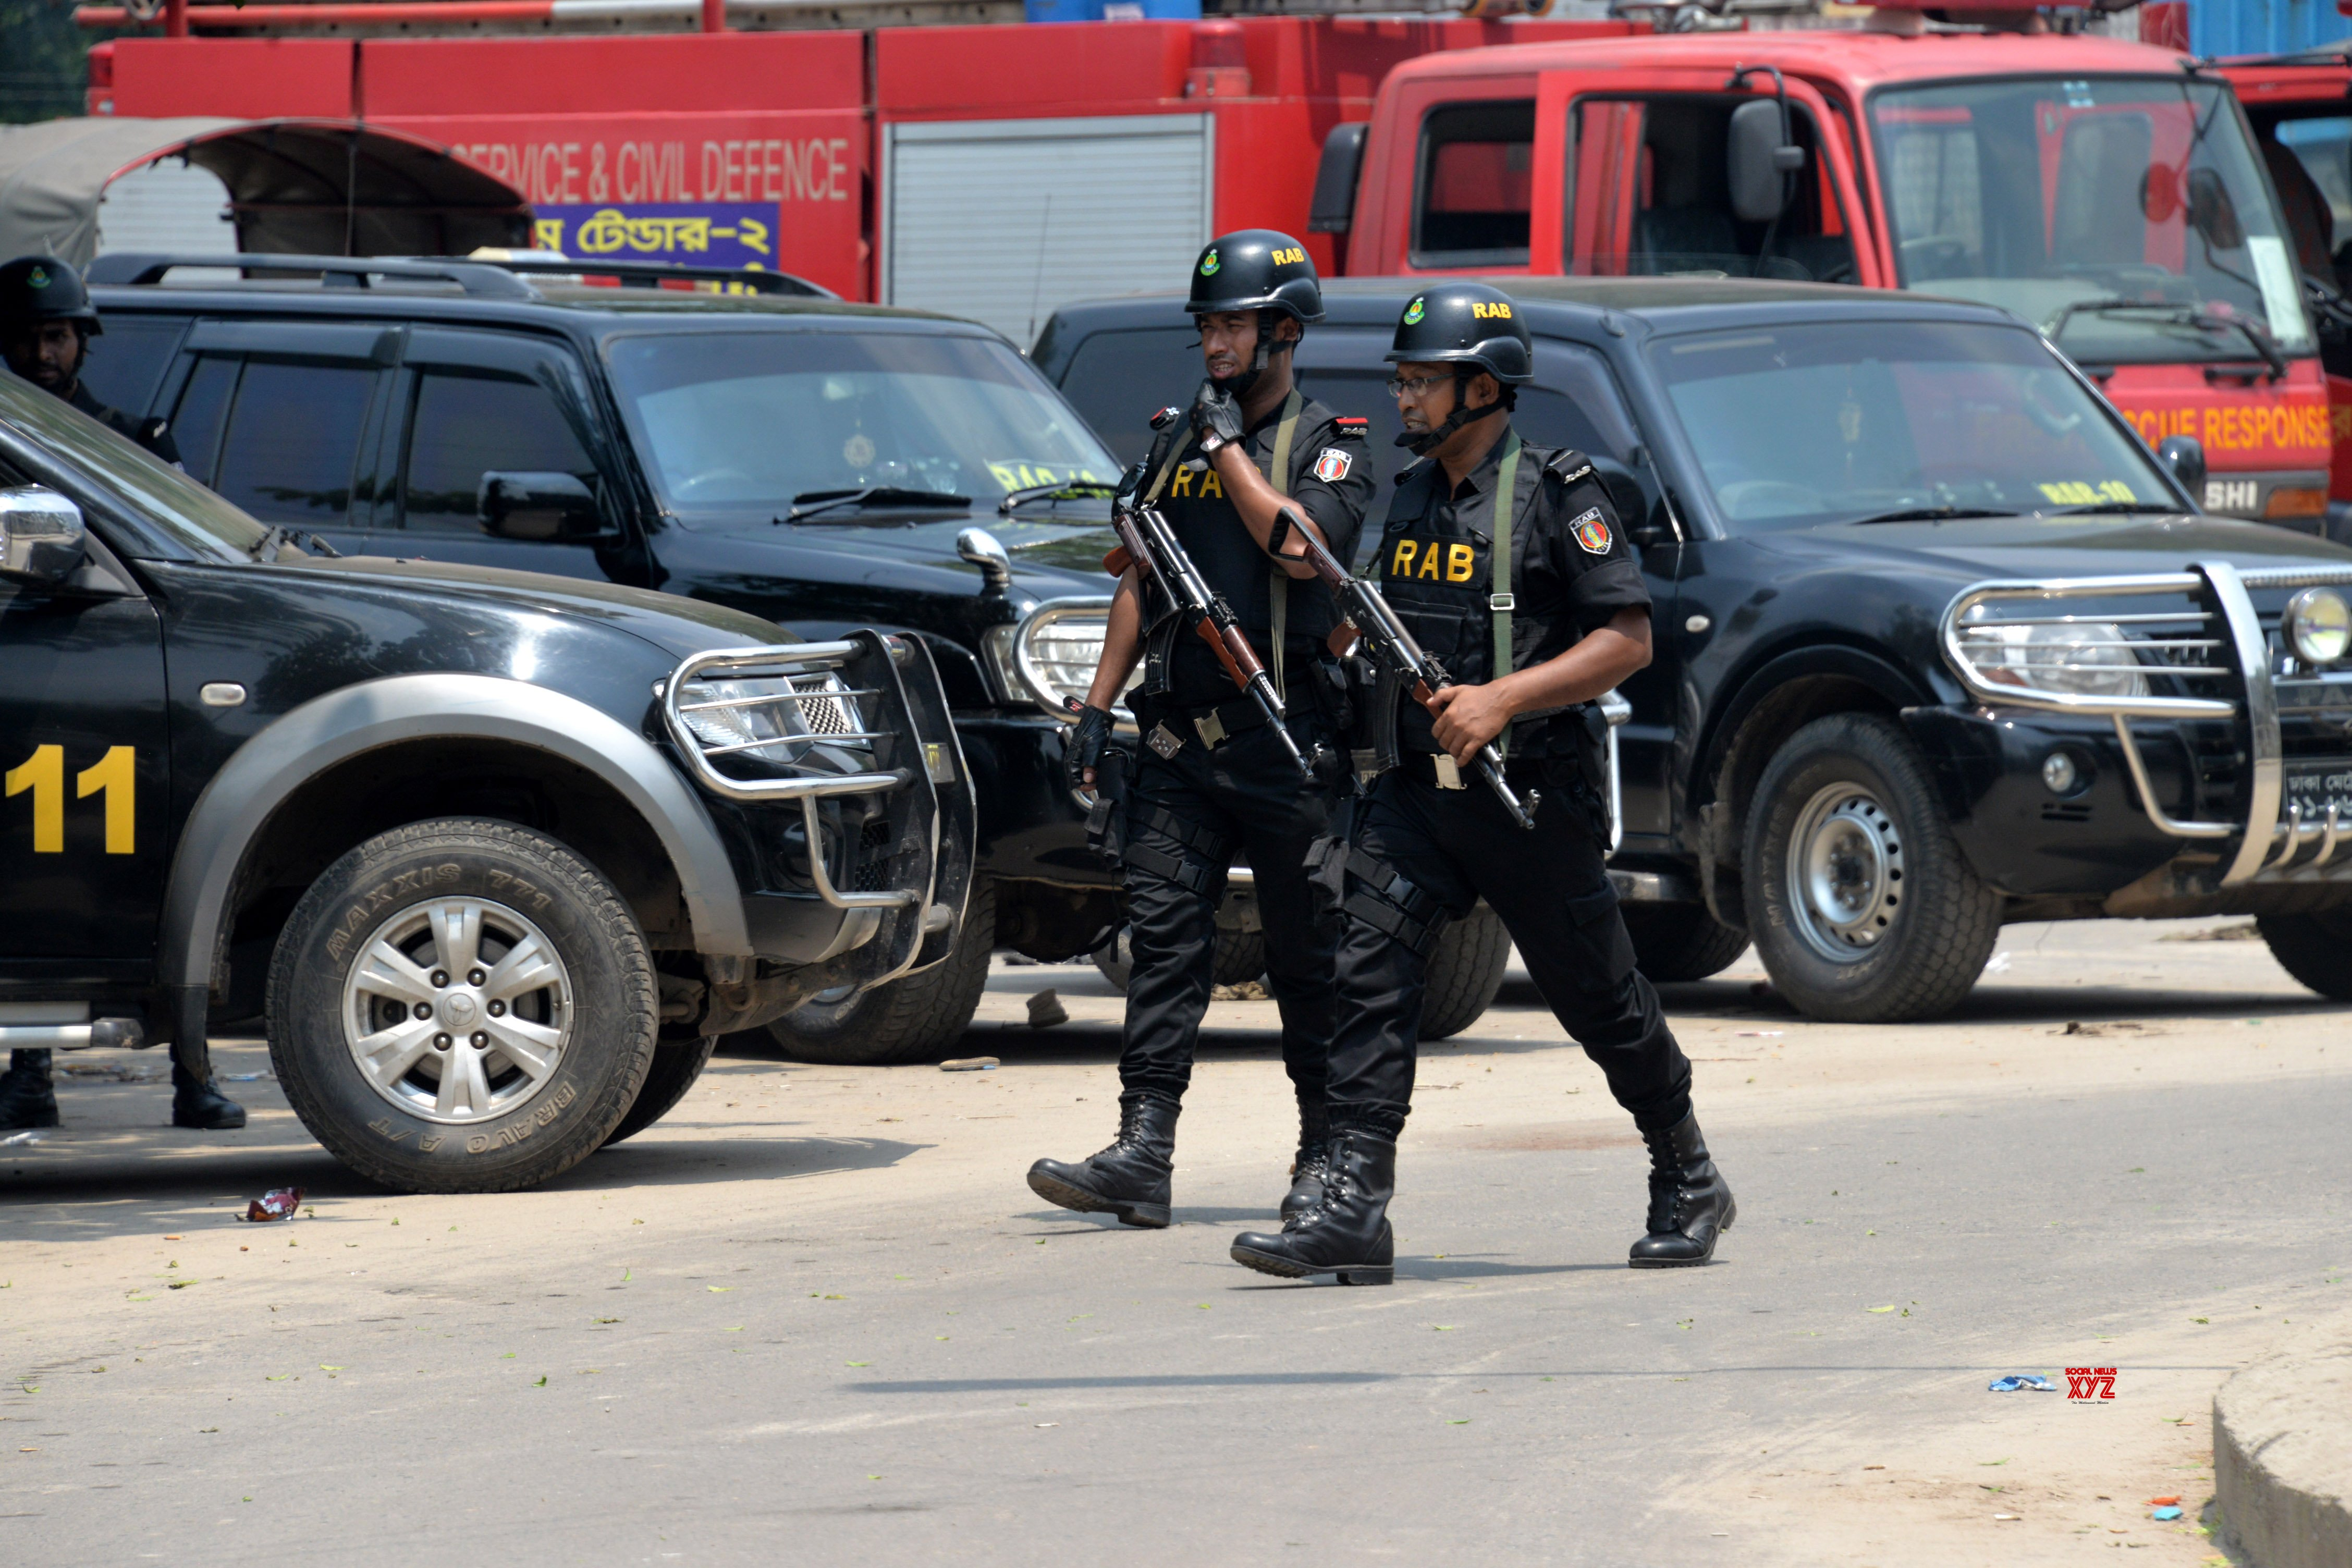 3 Bangladeshi security personnel held, released later